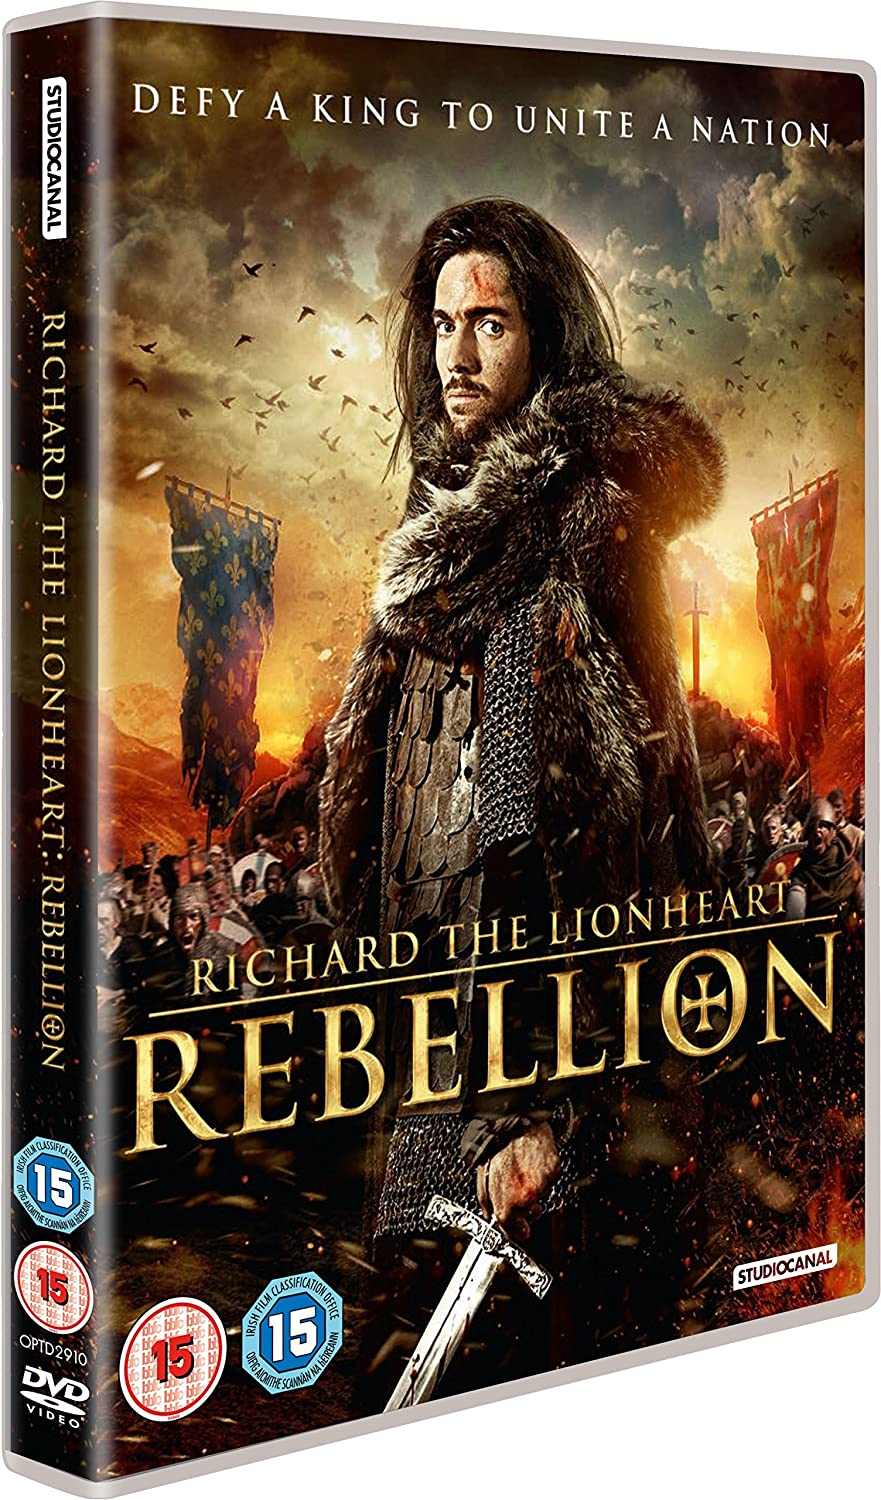 richard the lionheart rebellion imdb